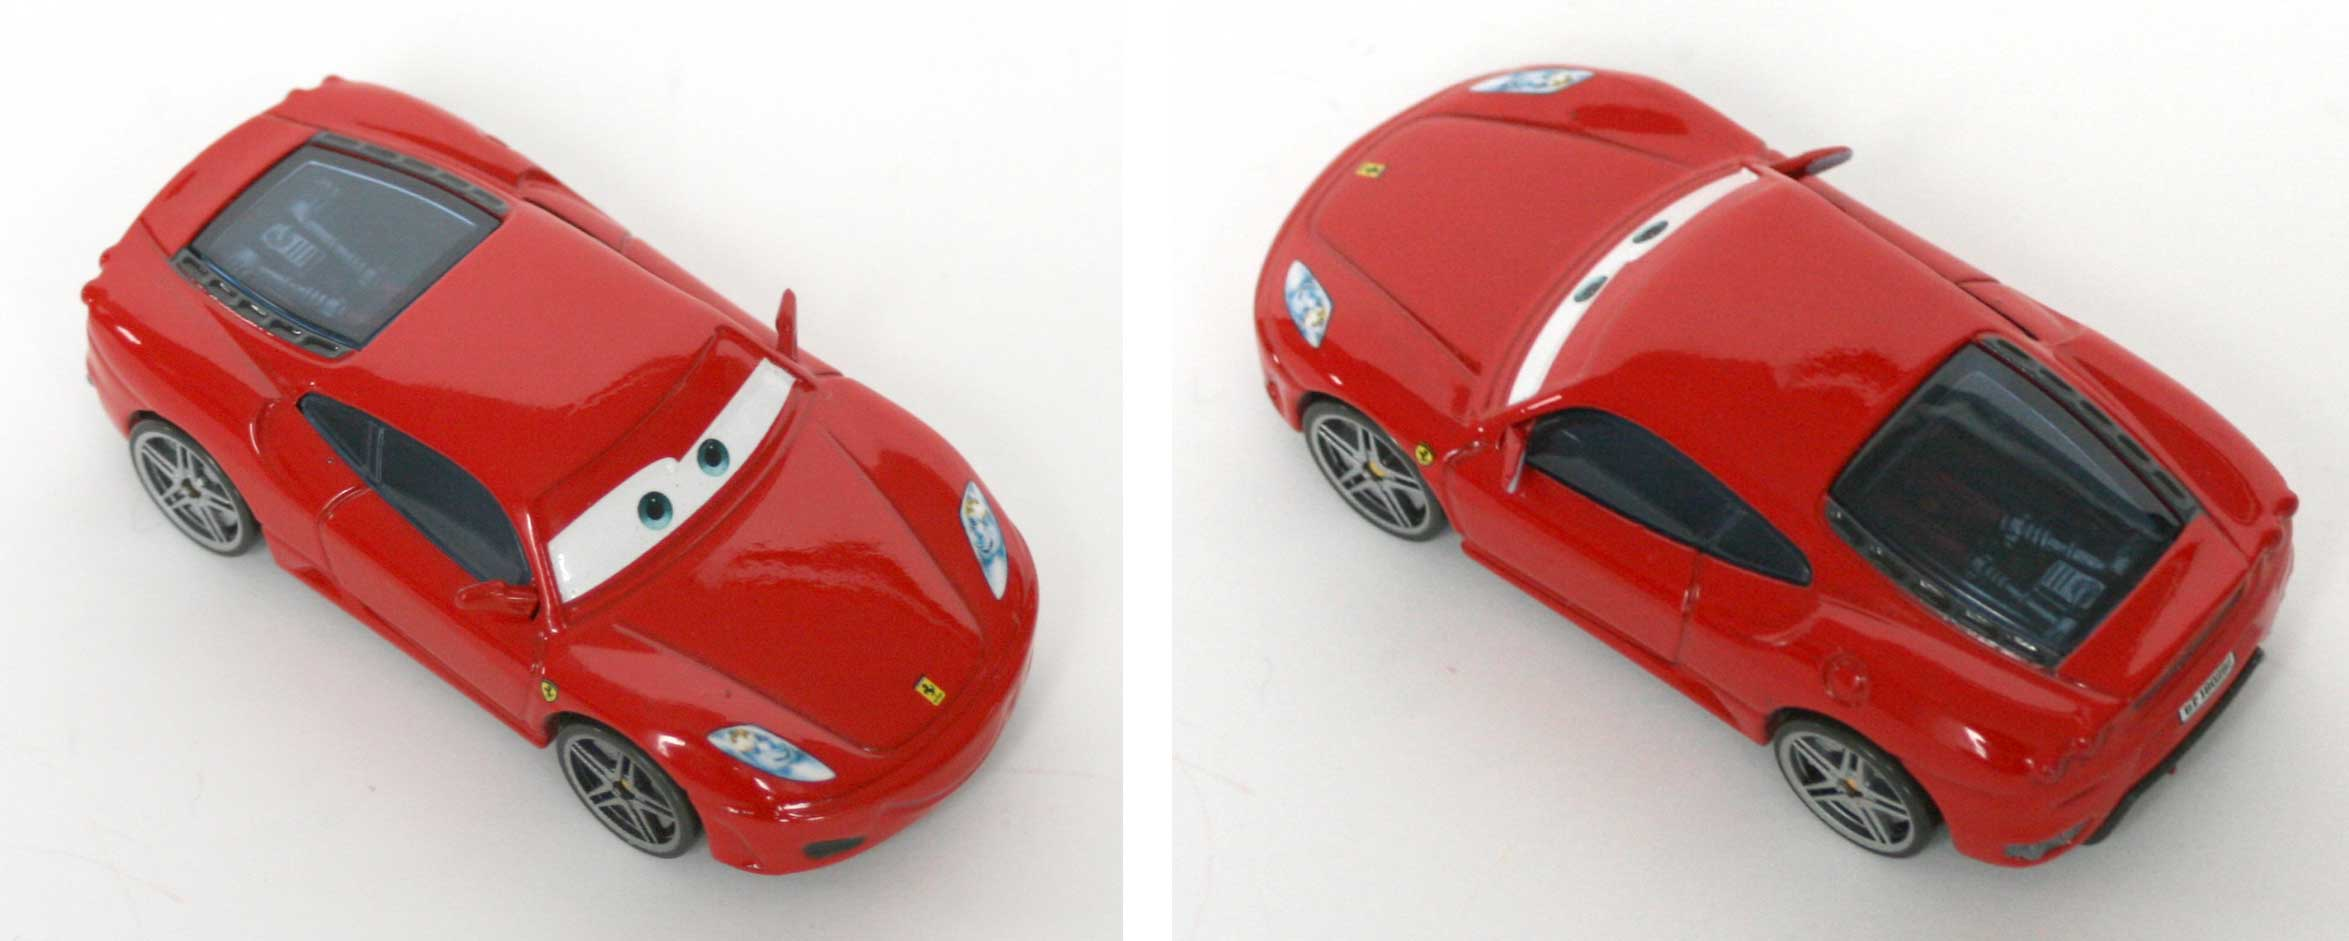 Mattel : Cars Supercharged - Ferrari F450 - Schumacher